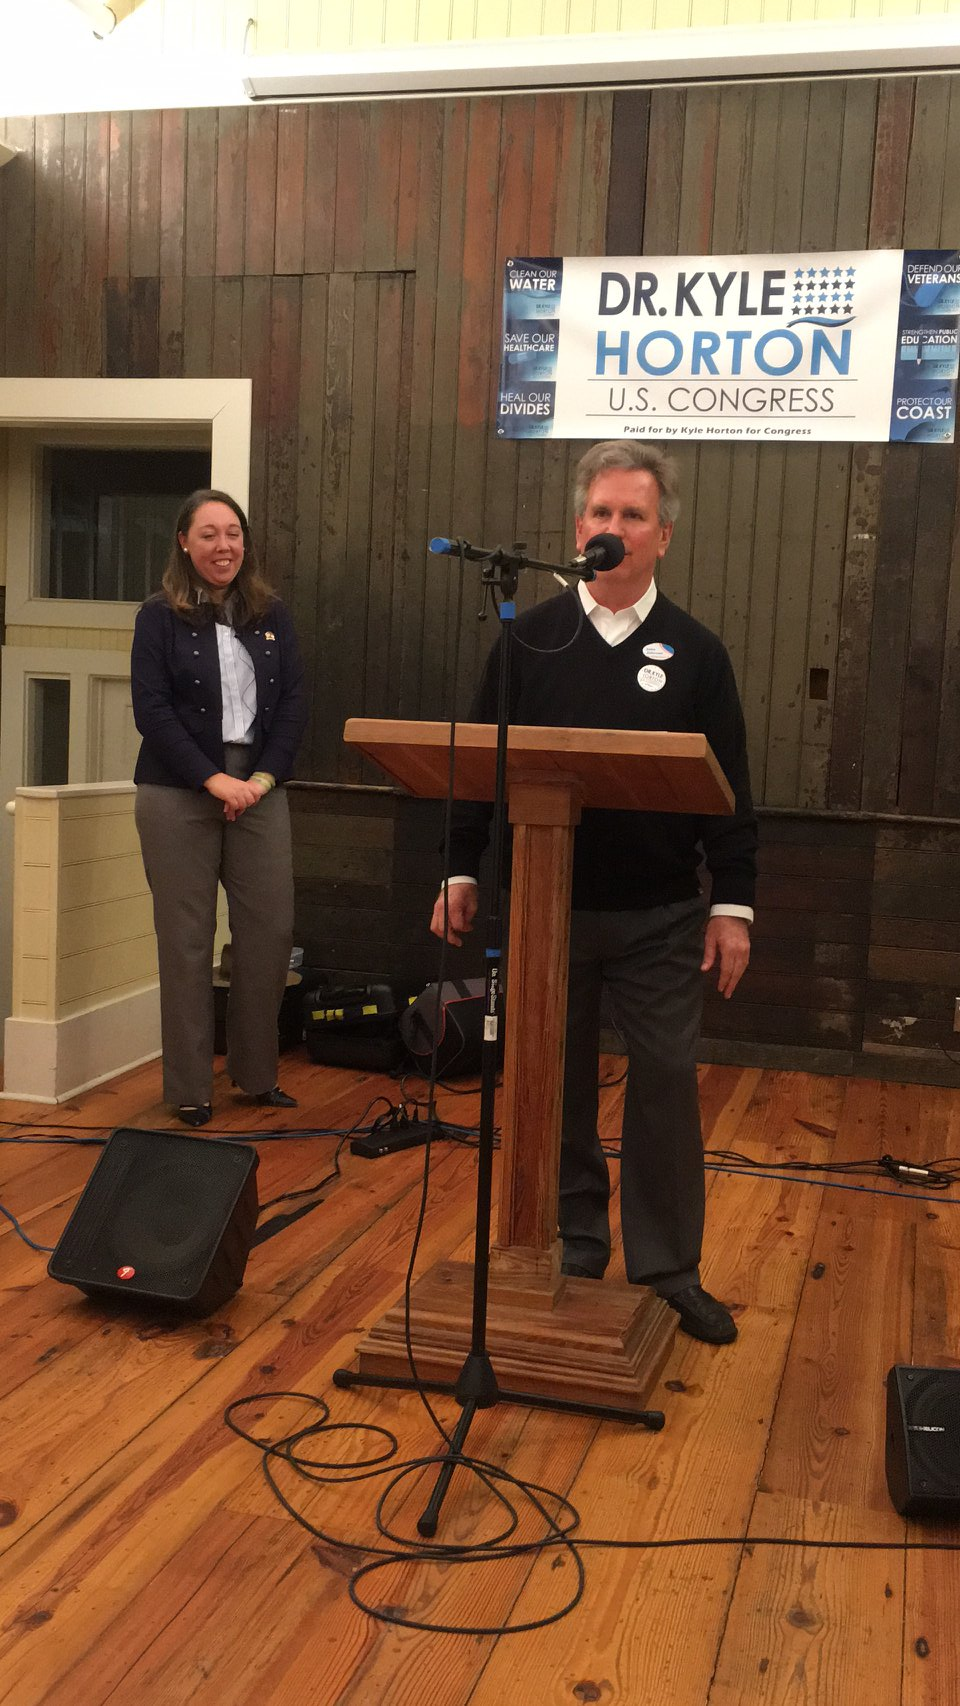 John had the huge honor in introducing Dr. Kyle Horton, candidate for 7th Congressional District at the Burgaw Depot, 2017